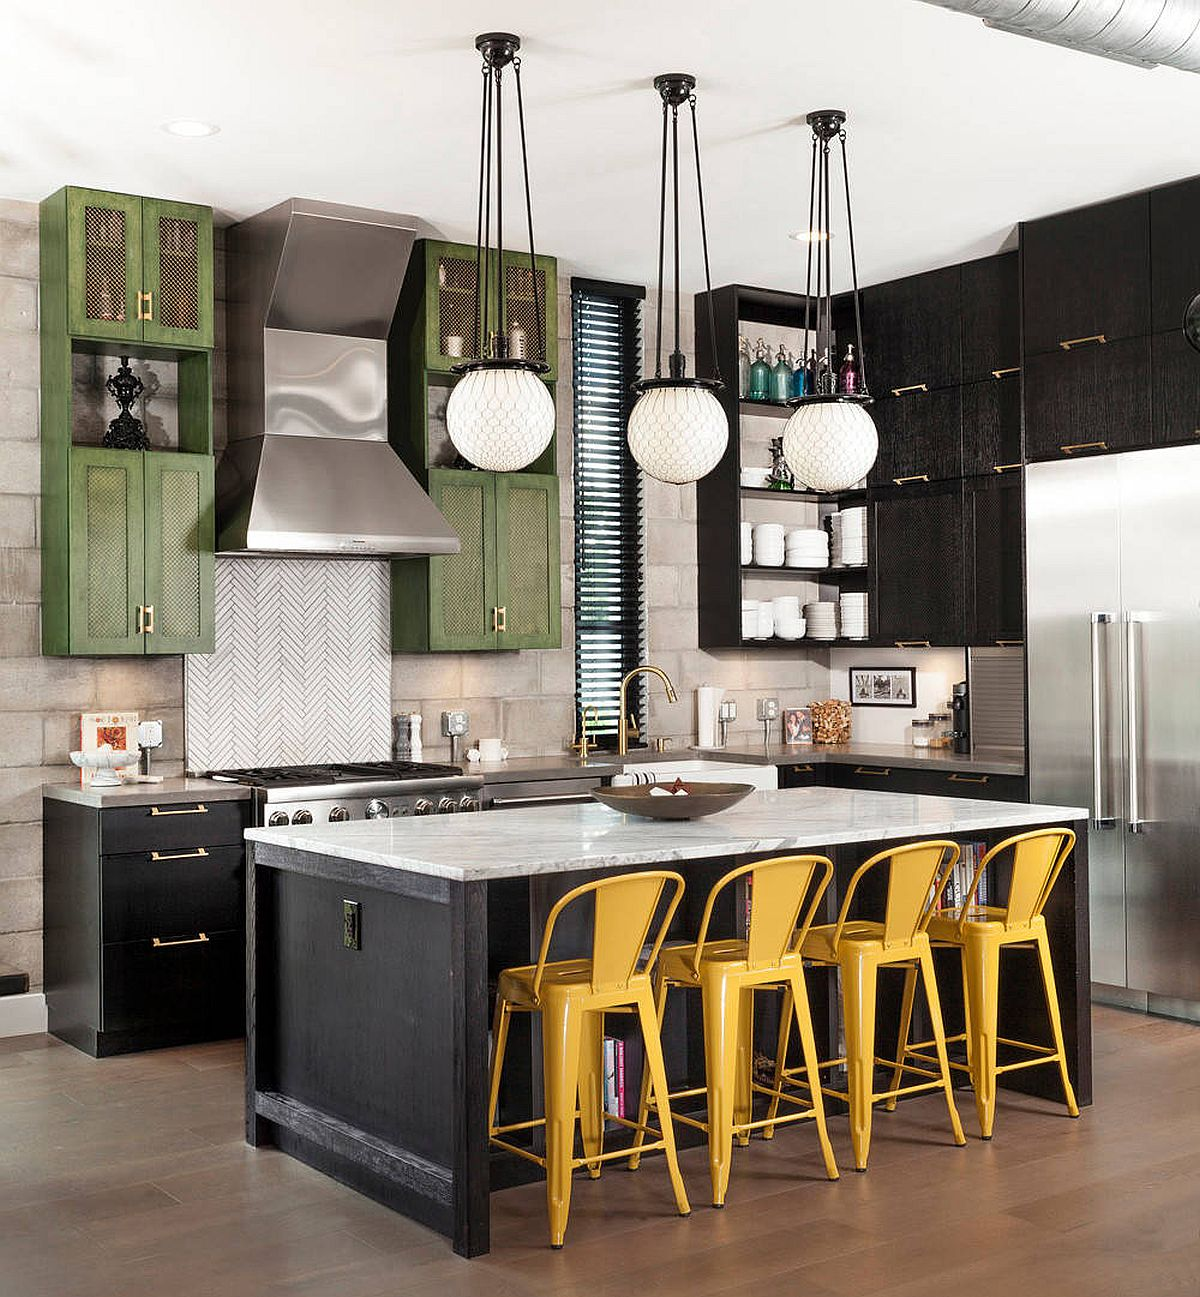 It-is-the-striking-bar-chairs-that-usher-yellow-into-this-industrial-farmhouse-style-kitchen-21369